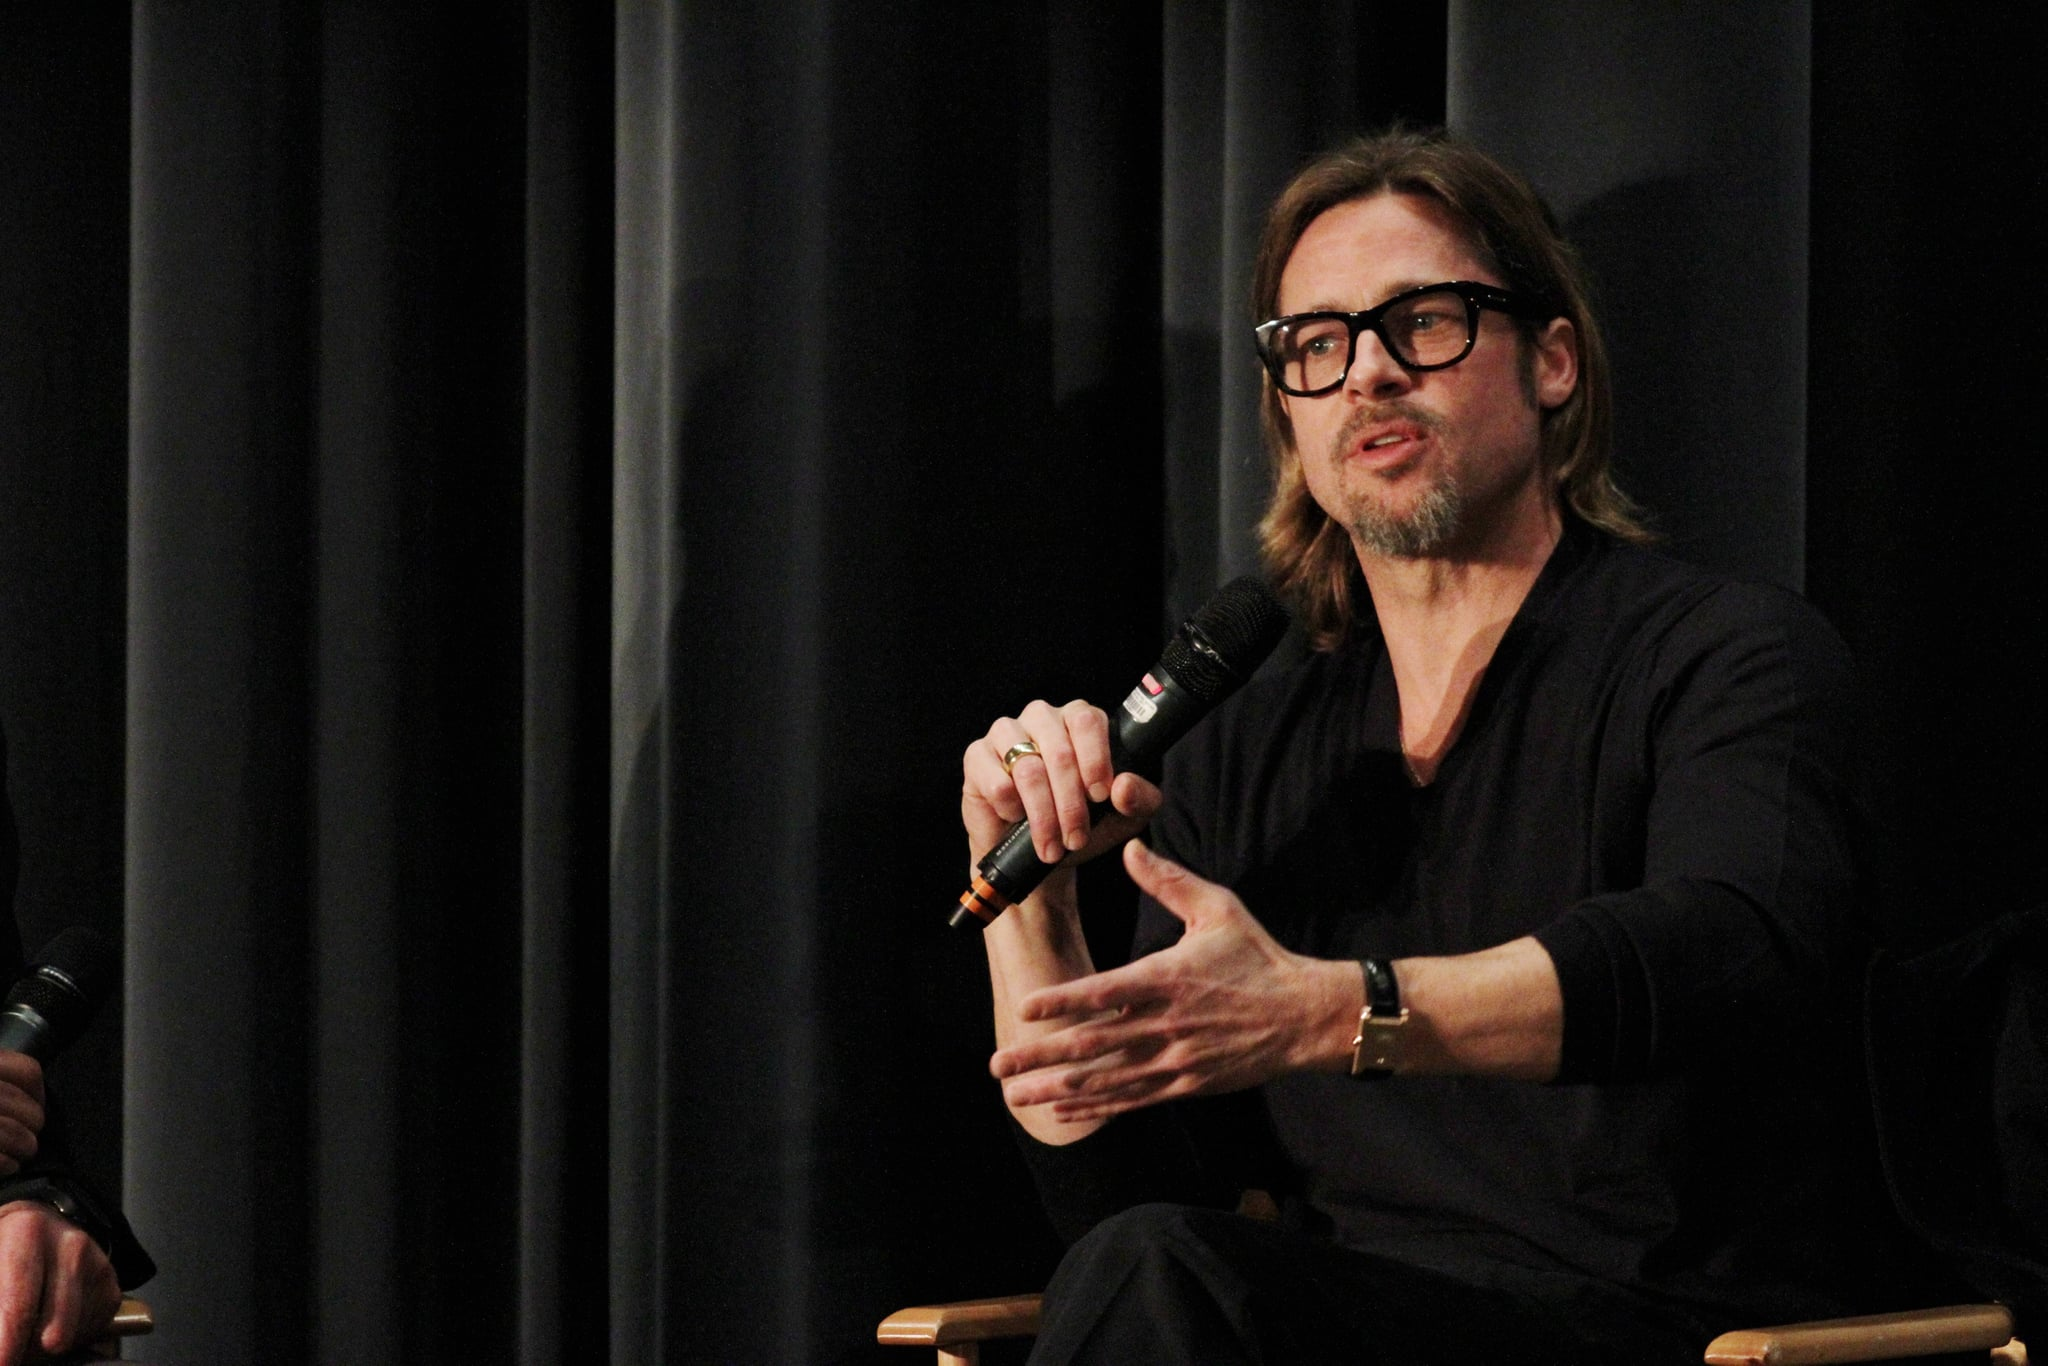 Brad Pitt answered questions about Moneyball following an LA screening.